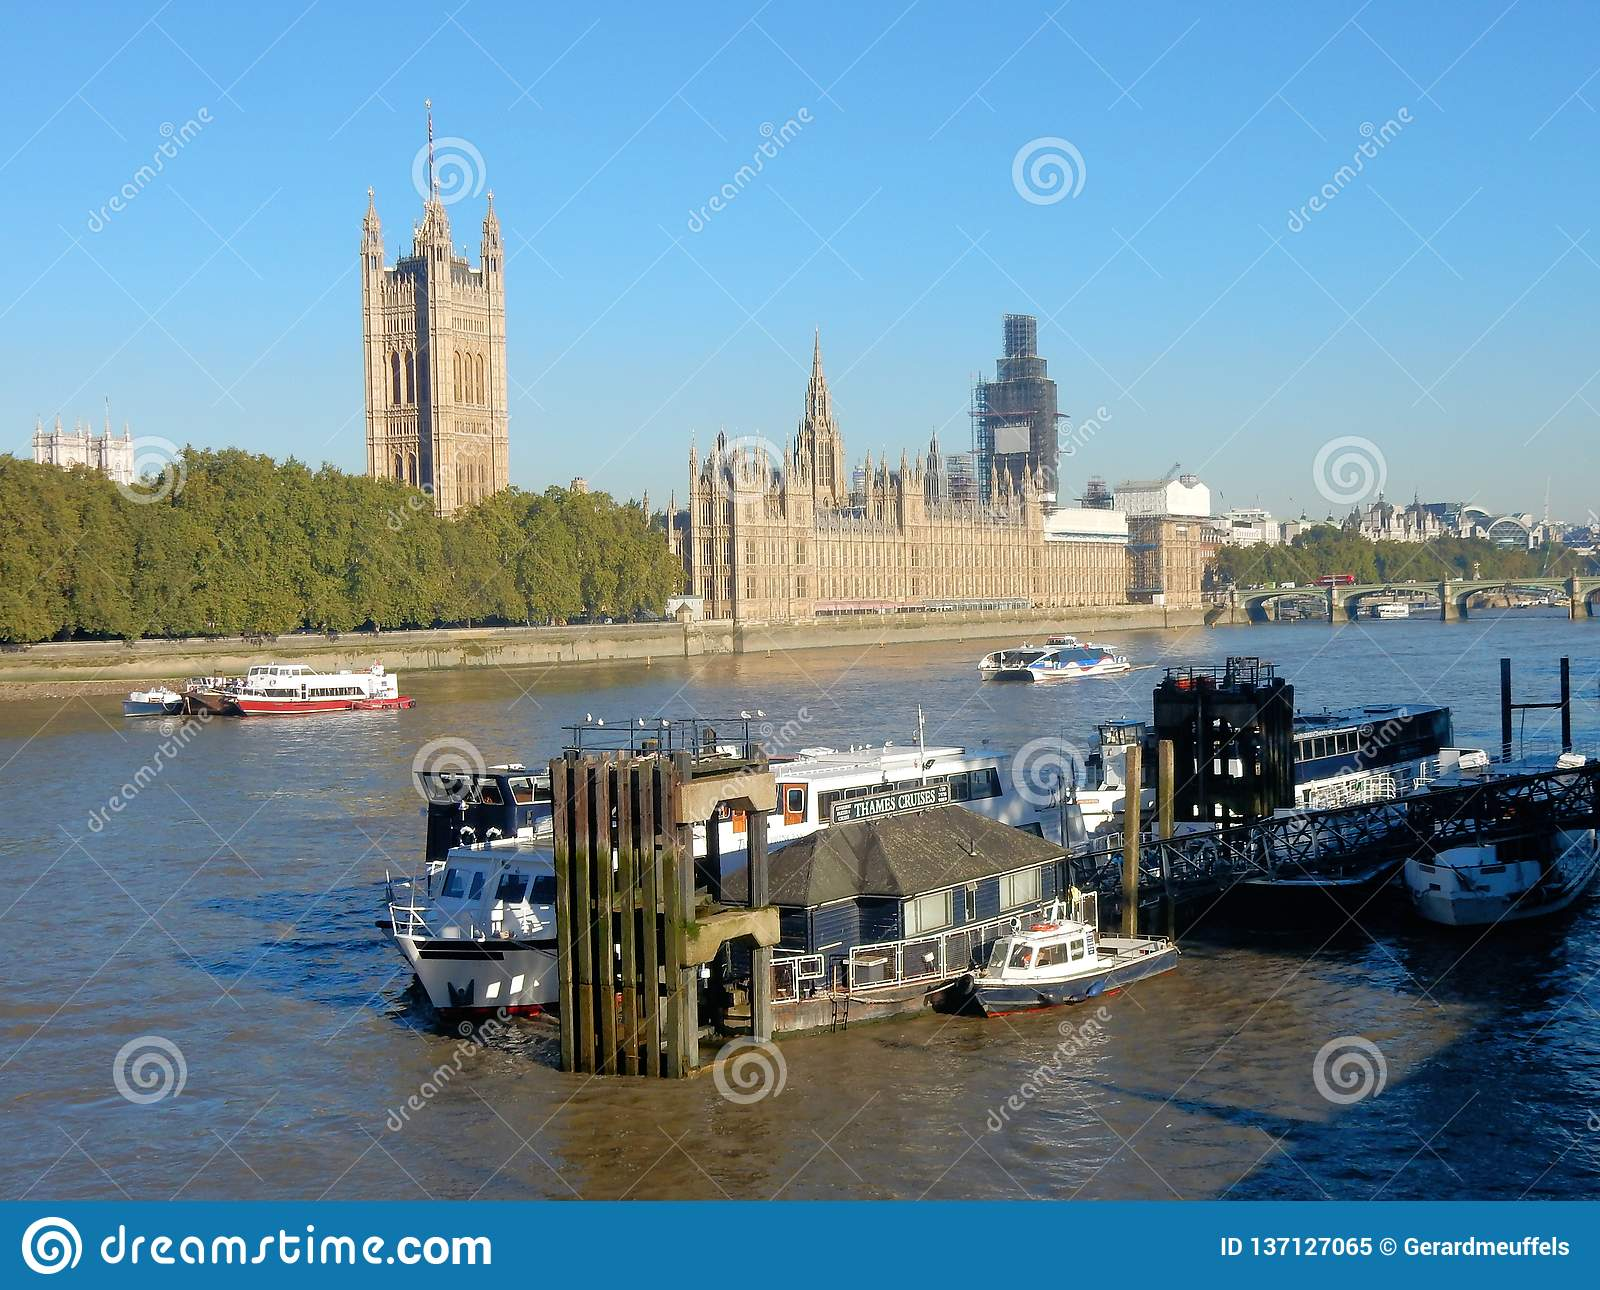 Houses of Parliament or Palace of Westminster on the River Thames, London, United Kingdom